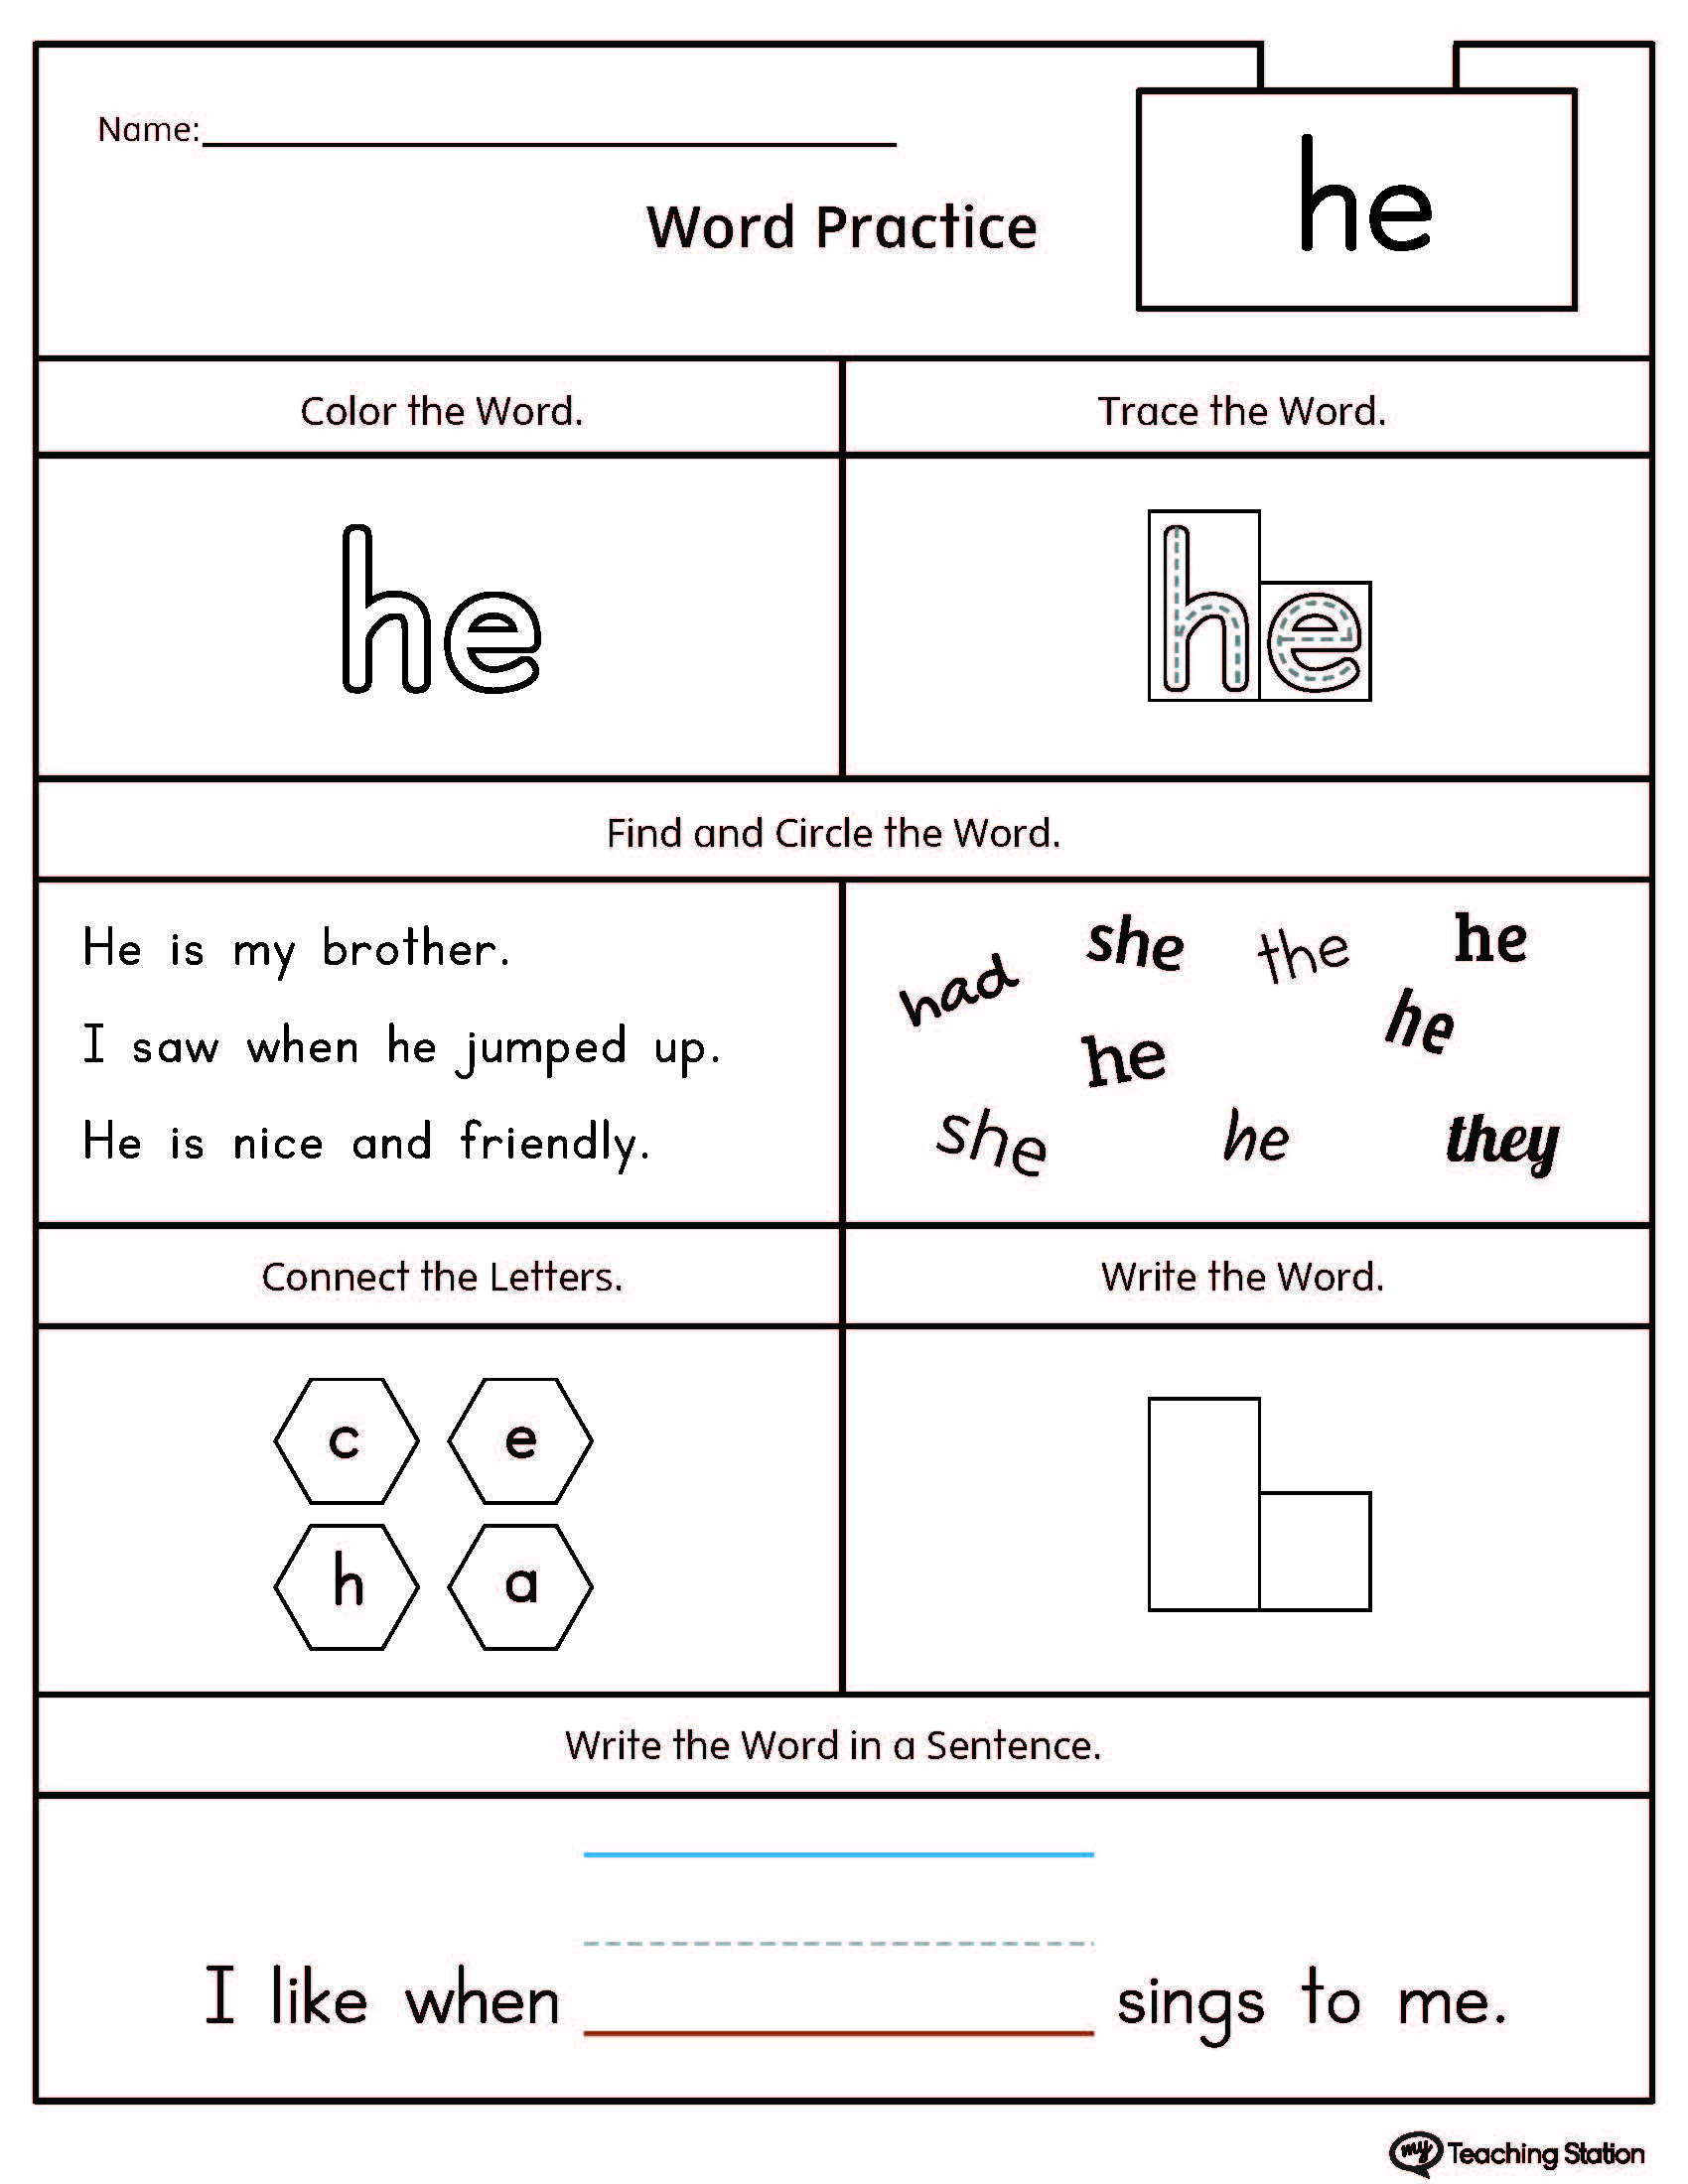 High-Frequency Word He Printable Worksheet | Myteachingstation | Printable Sight Word Worksheets